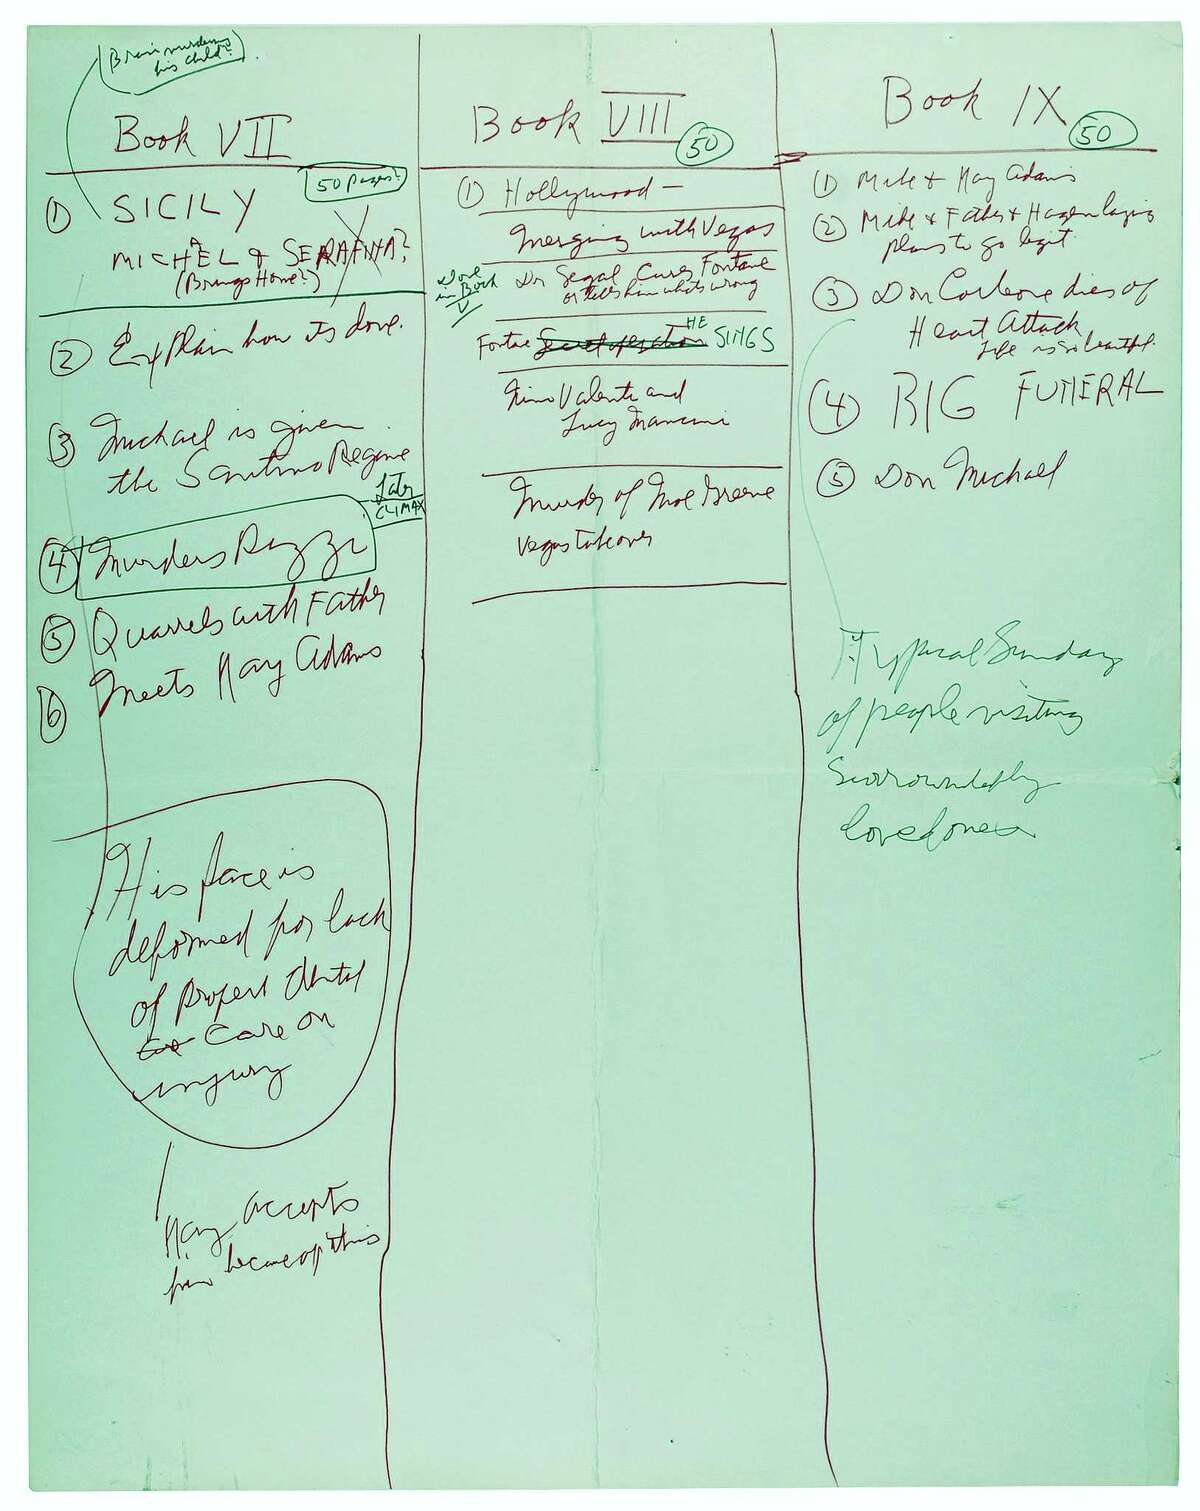 """This August 2015 photo provided by RR Auction shows a large outline of chapters 7, 8, and 9 of Mario Puzo's """"The Godfather,"""" covering scenes in Sicily and Las Vegas, Vito Corleone's death, and his son Michael's ascension as godfather. The outline is part of a large collection of Puzo's papers to be auctioned by Boston-based RR Auction on Feb. 18, 2016. The collection covers Puzo's entire career, but is highlighted by thousands of pages of """"The Godfather"""" novel and screenplay, including multiple drafts with handwritten revisions."""